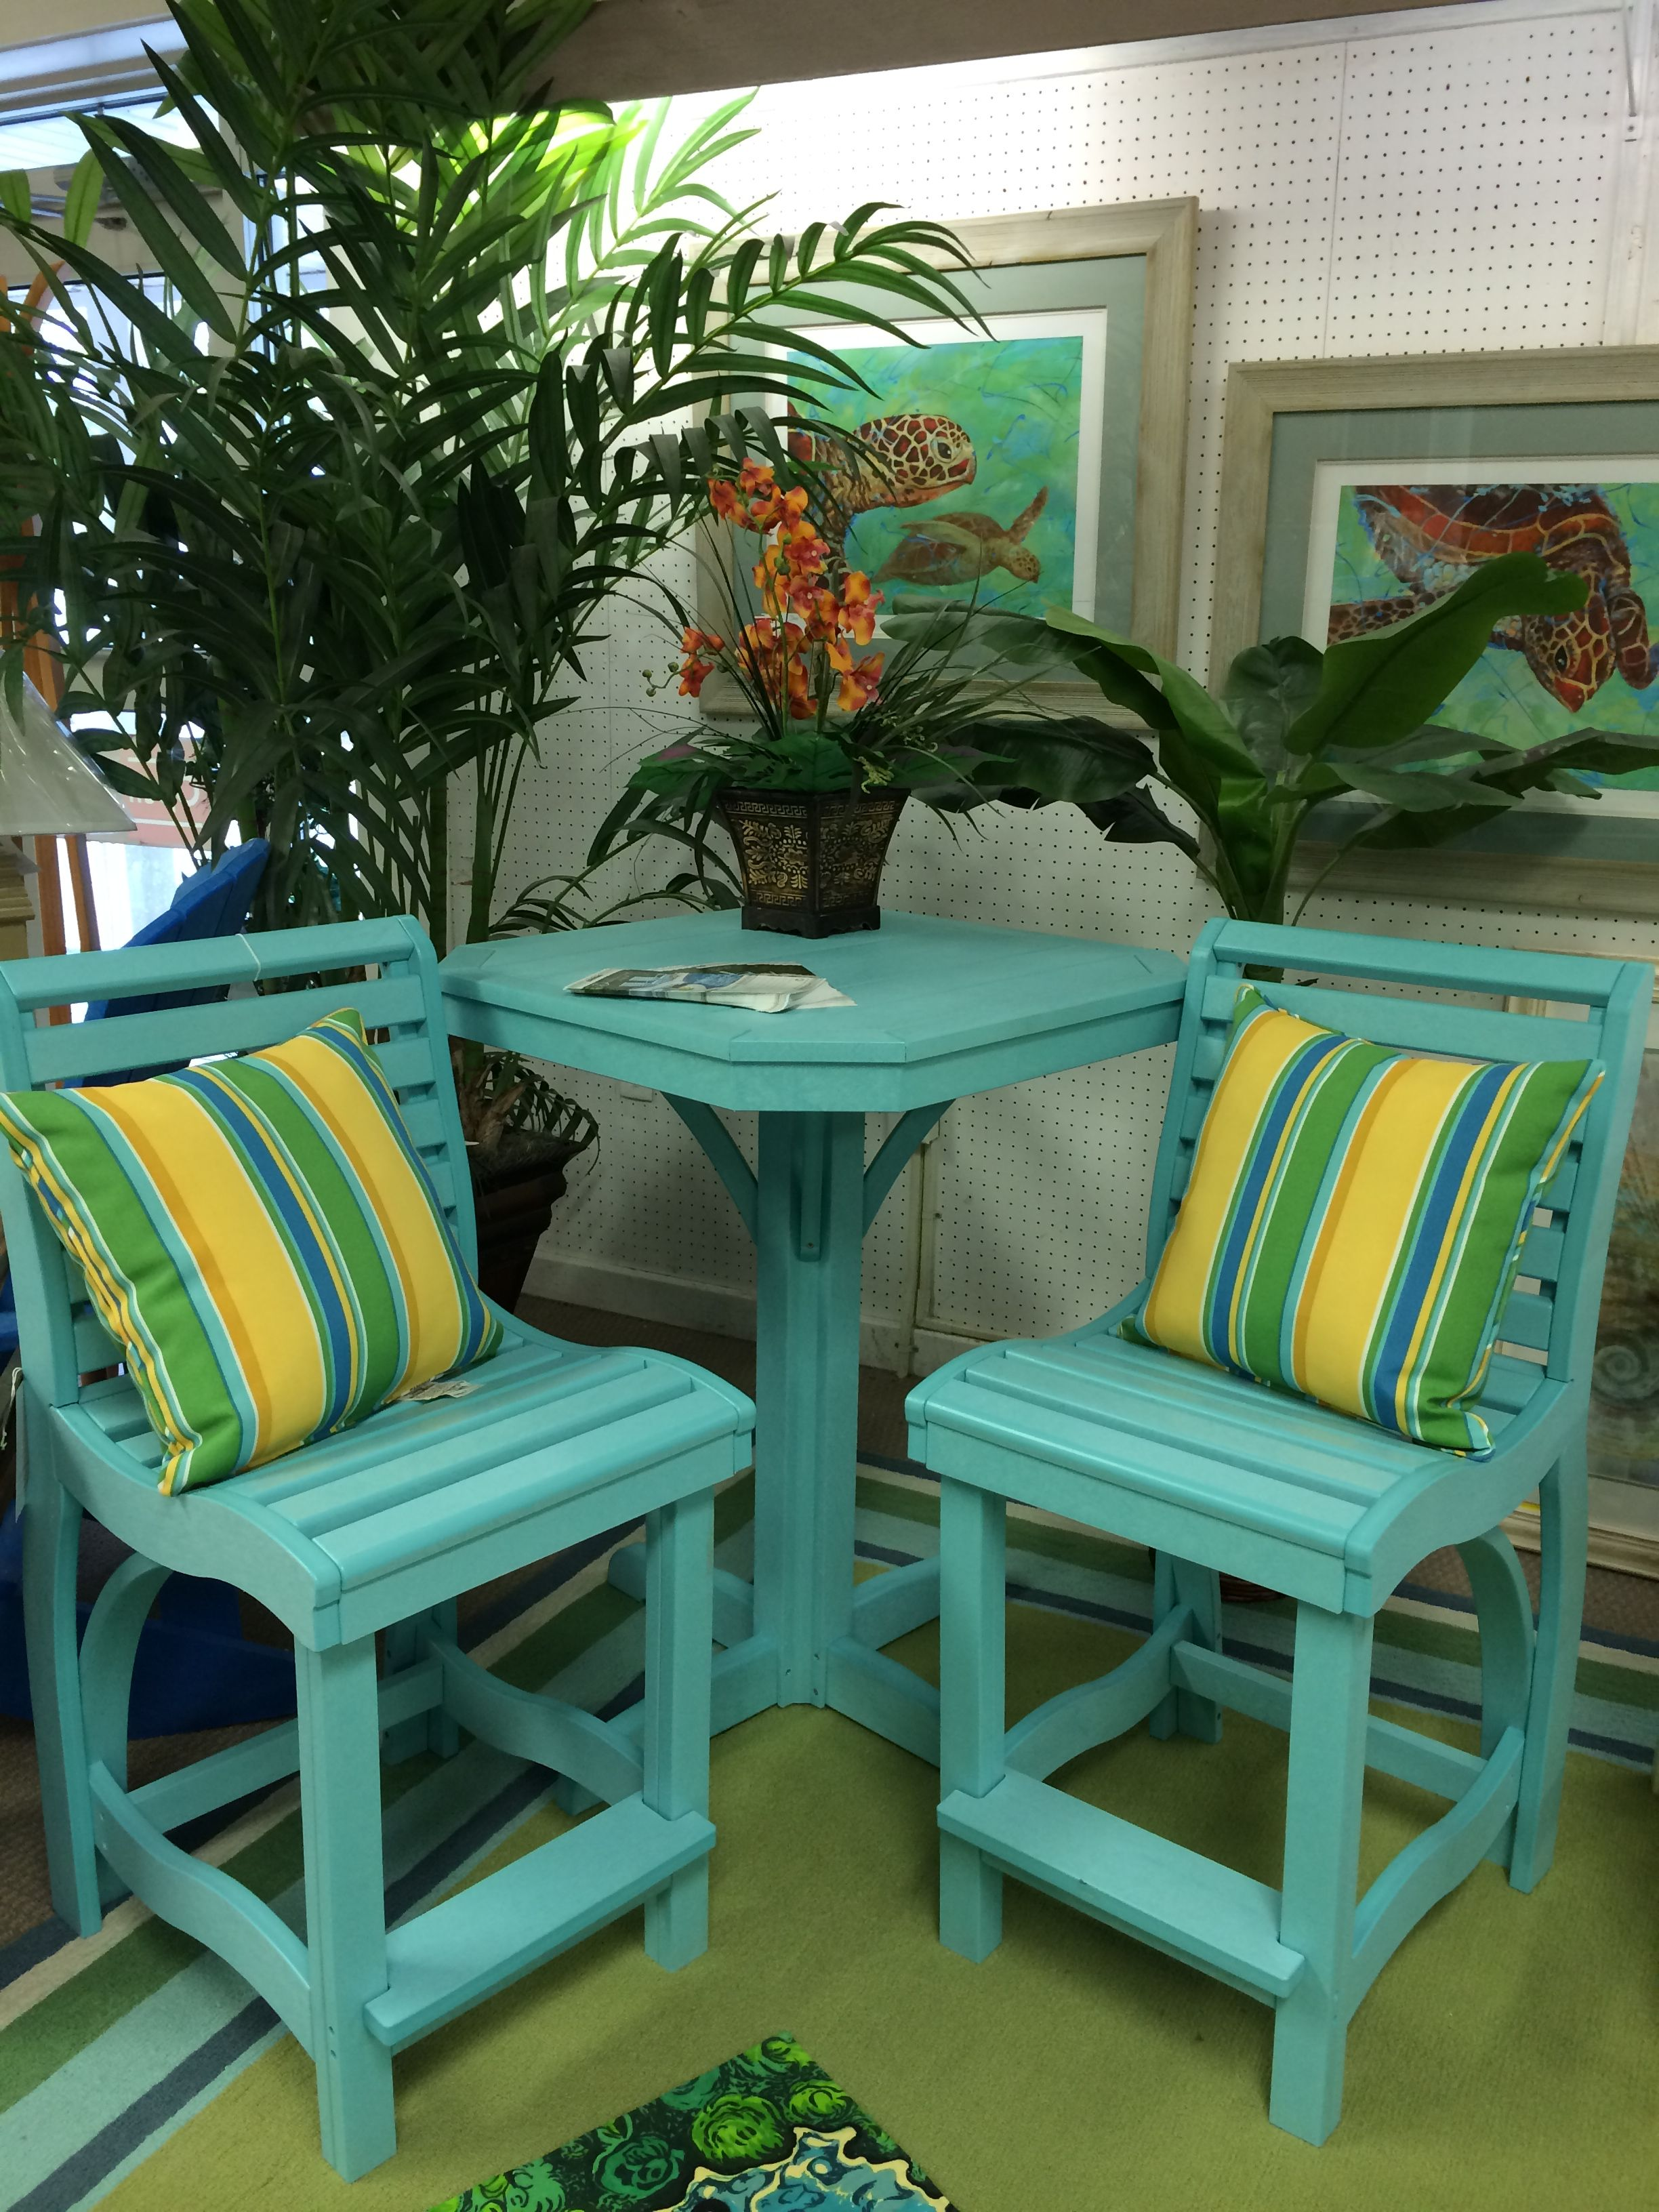 Manteo Furniture & Appliance Outdoor St Tropez Collection from